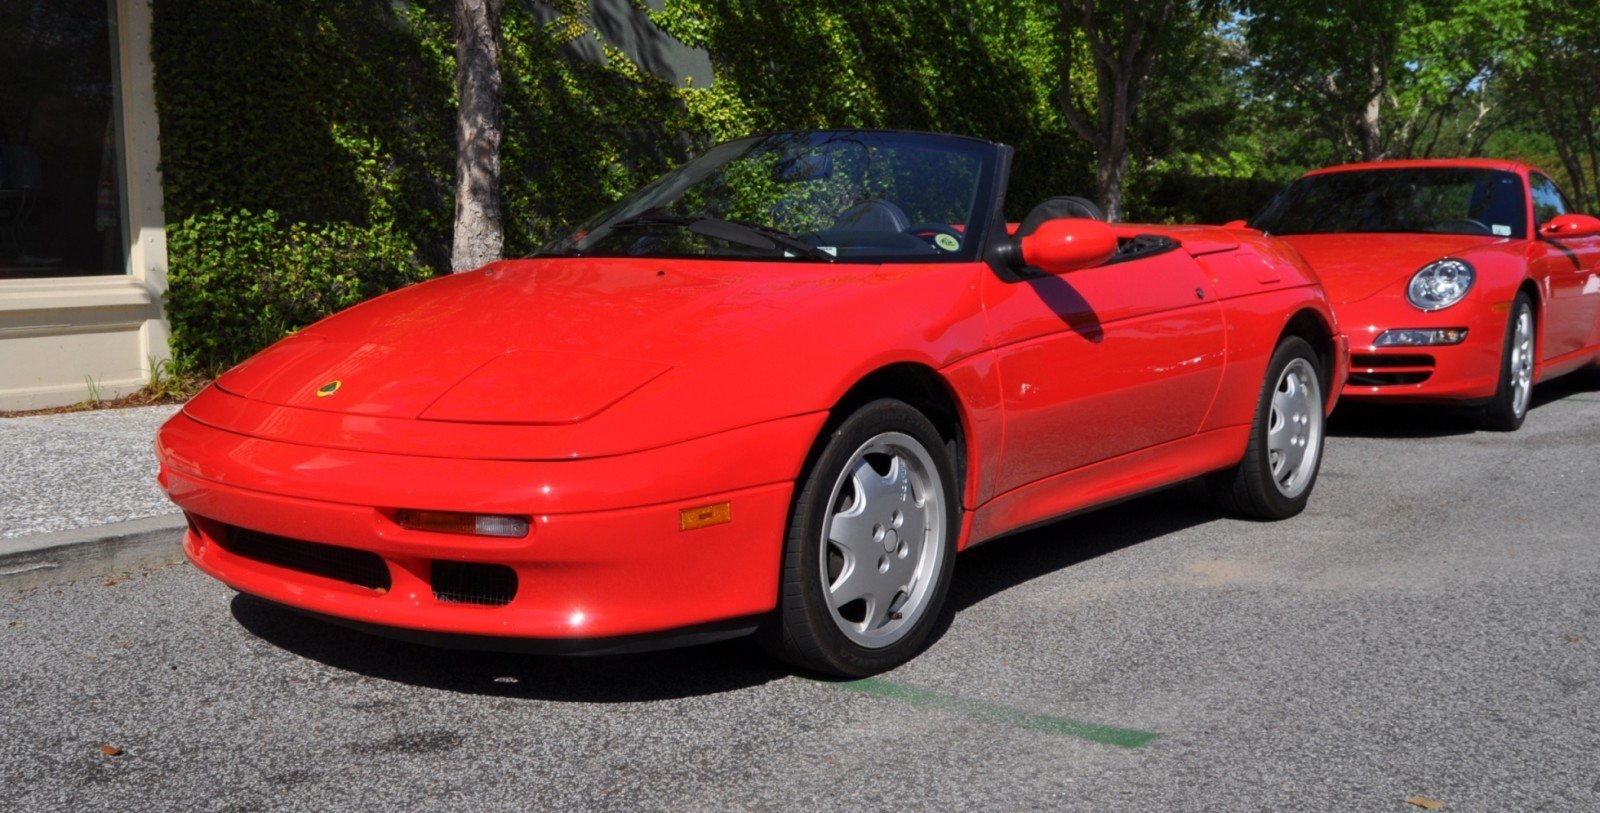 Rare Ragtops - A Pair of Lotus Elans Graced Kiawah Island, SC Cars and Coffee Today 20